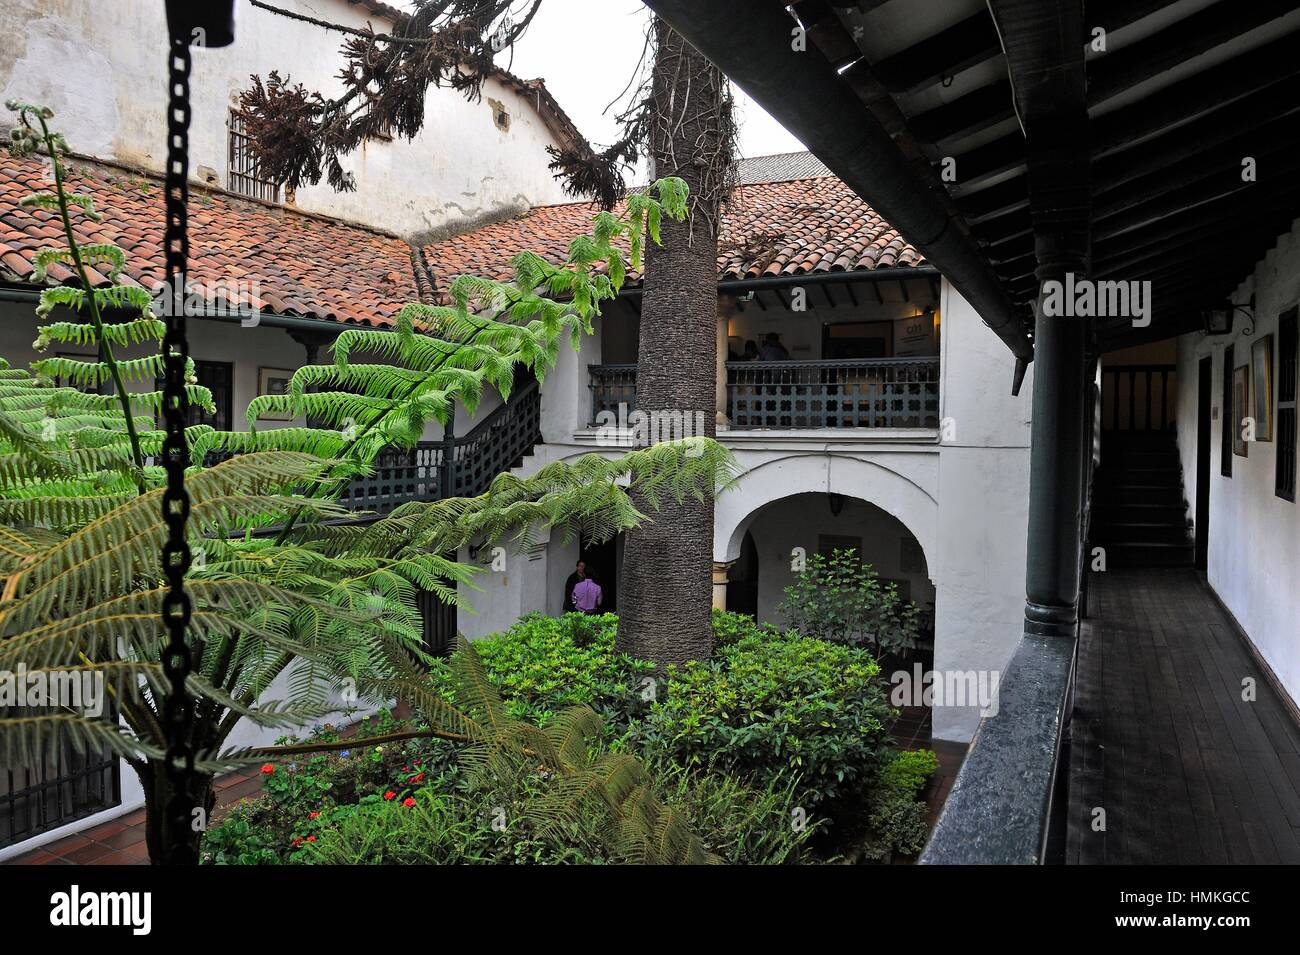 patio of an colonial-era building housing the famous restaurant La Sociedad in Calle11 6-42, La Candelaria district - Stock Image